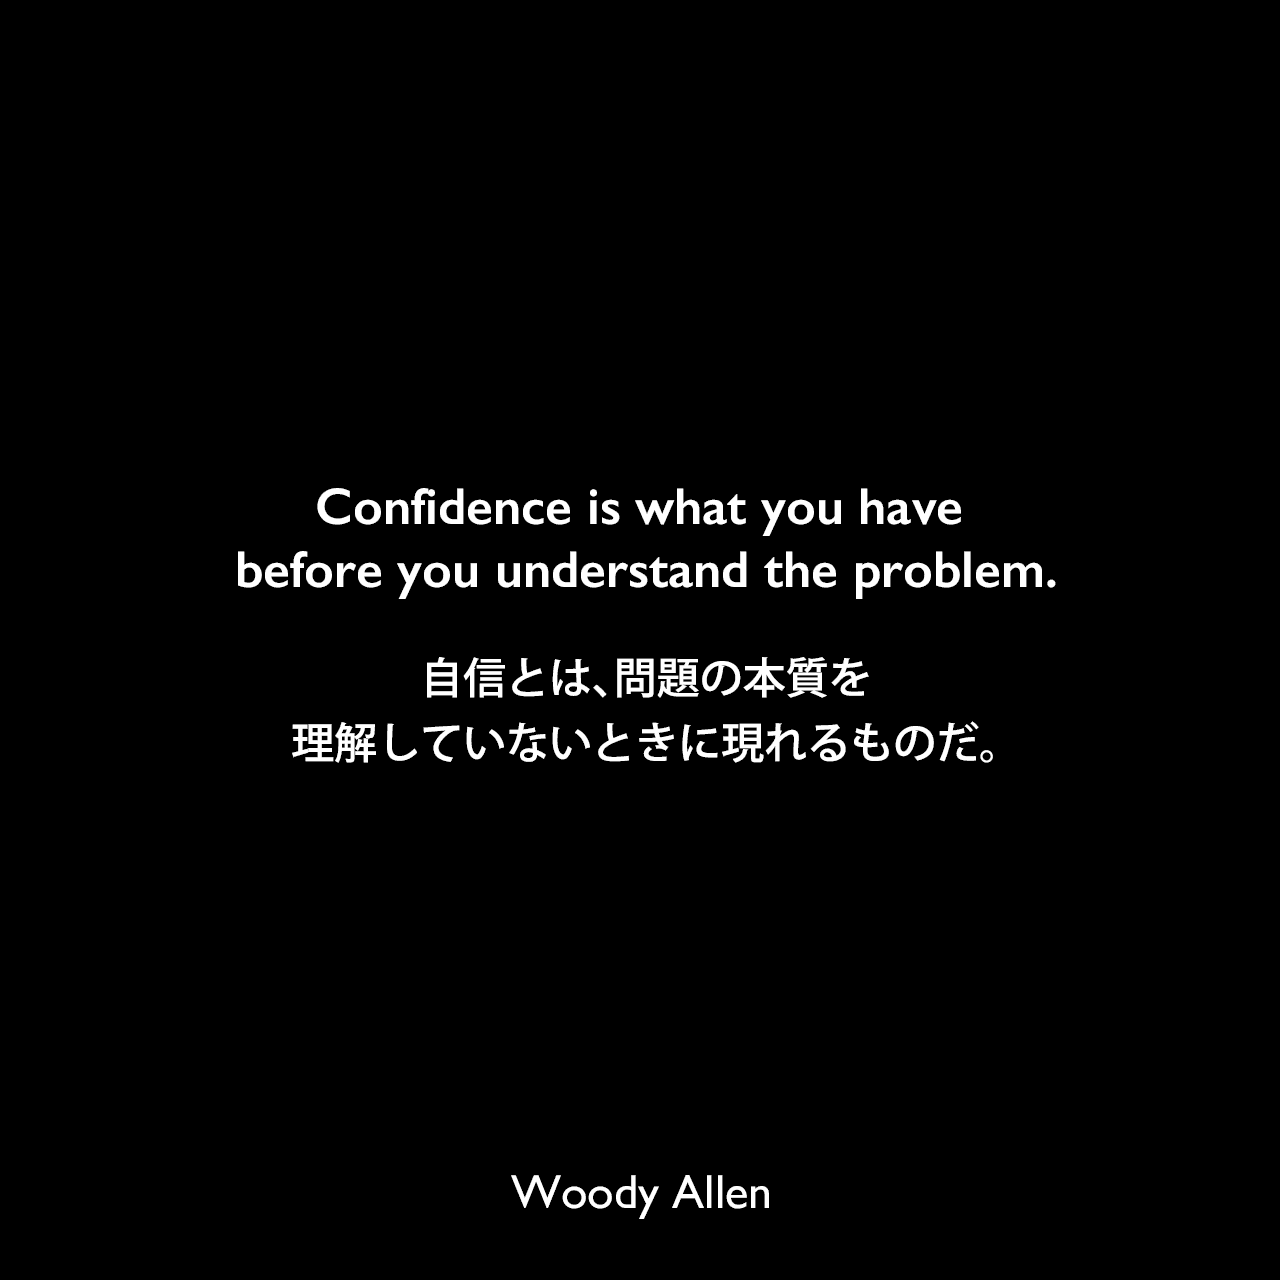 Confidence is what you have before you understand the problem.自信とは、問題の本質を理解していないときに現れるものだ。Woody Allen